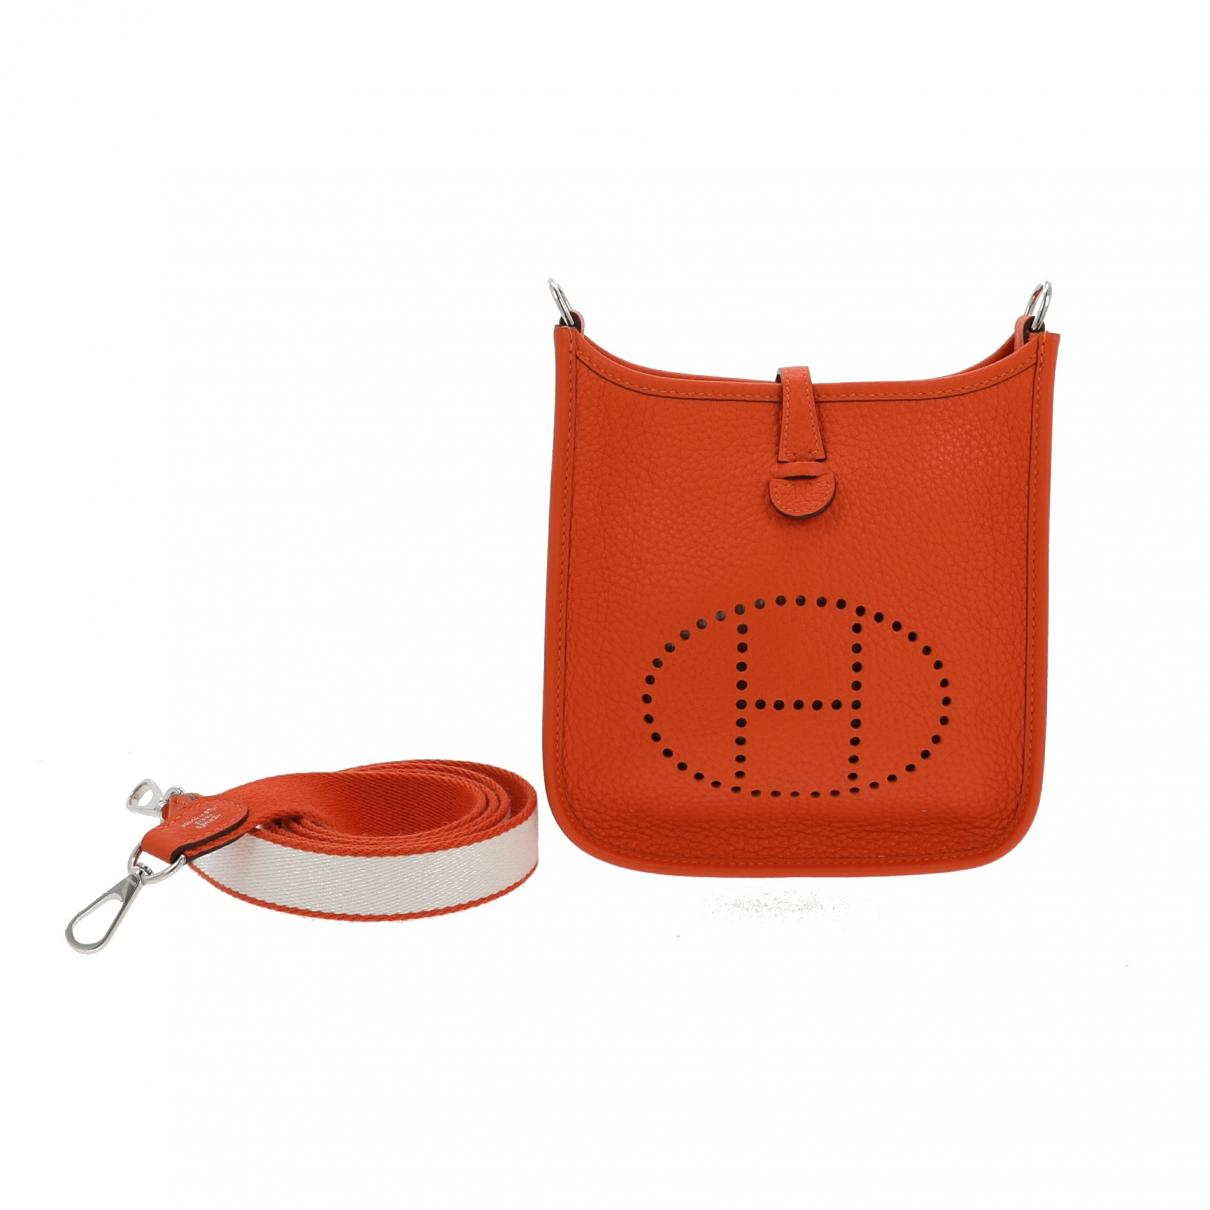 4203fd9f2f03 Lyst - Hermès Pre-owned Evelyne Leather Crossbody Bag in Orange